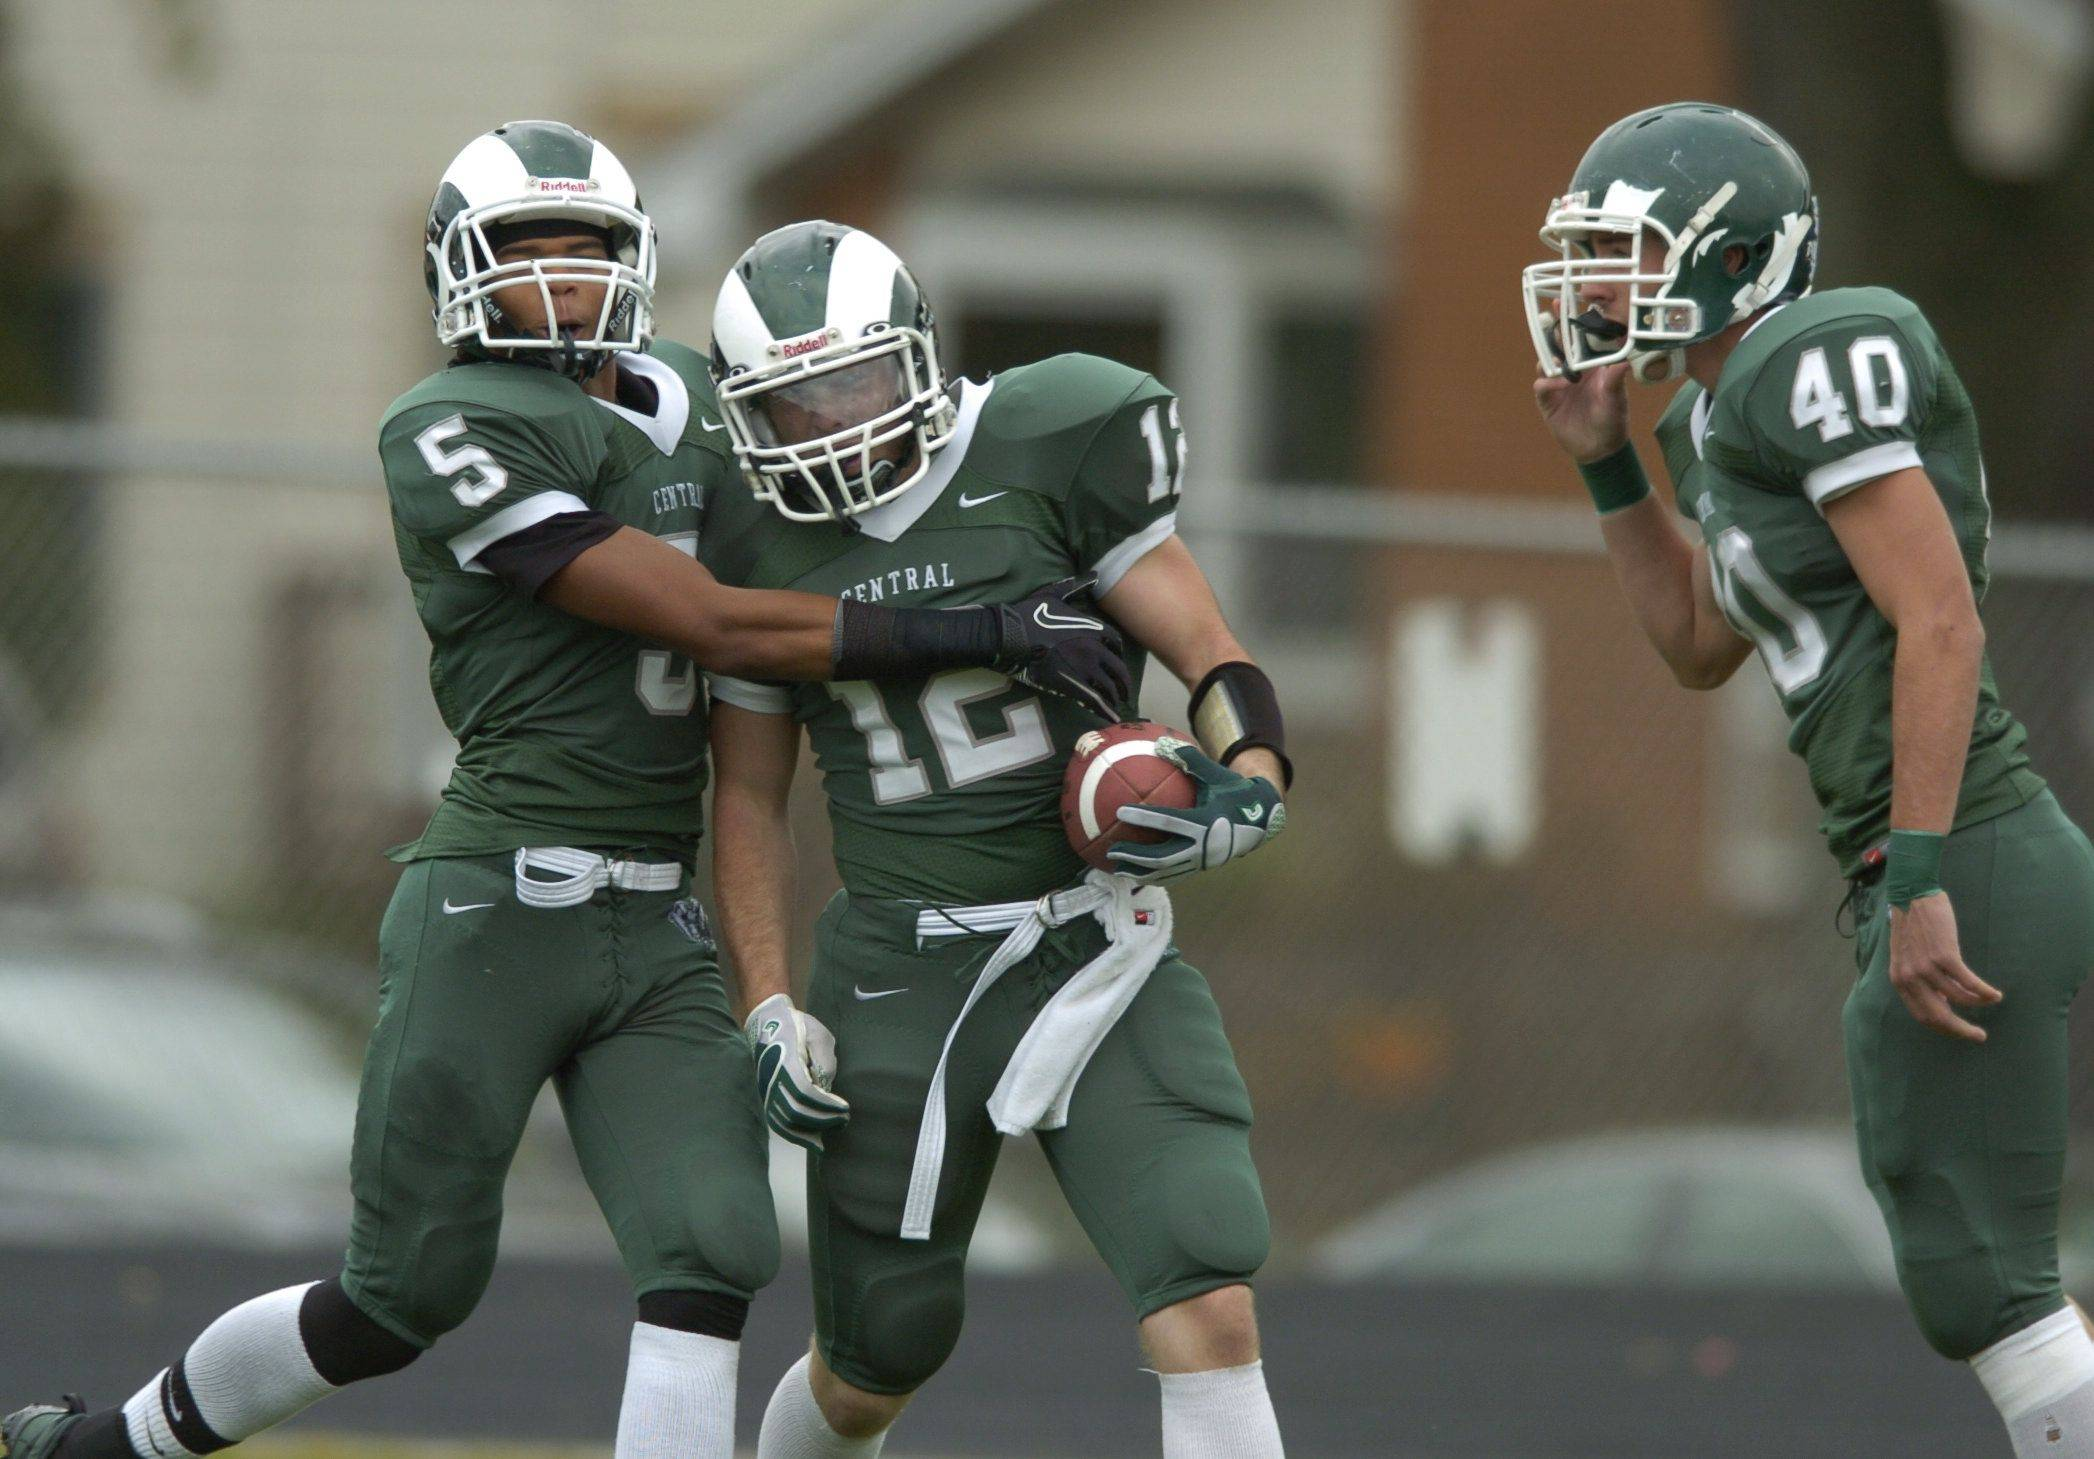 Week 9 - Images from the Mt. Vernon at Grayslake Central football game Saturday, October 23.